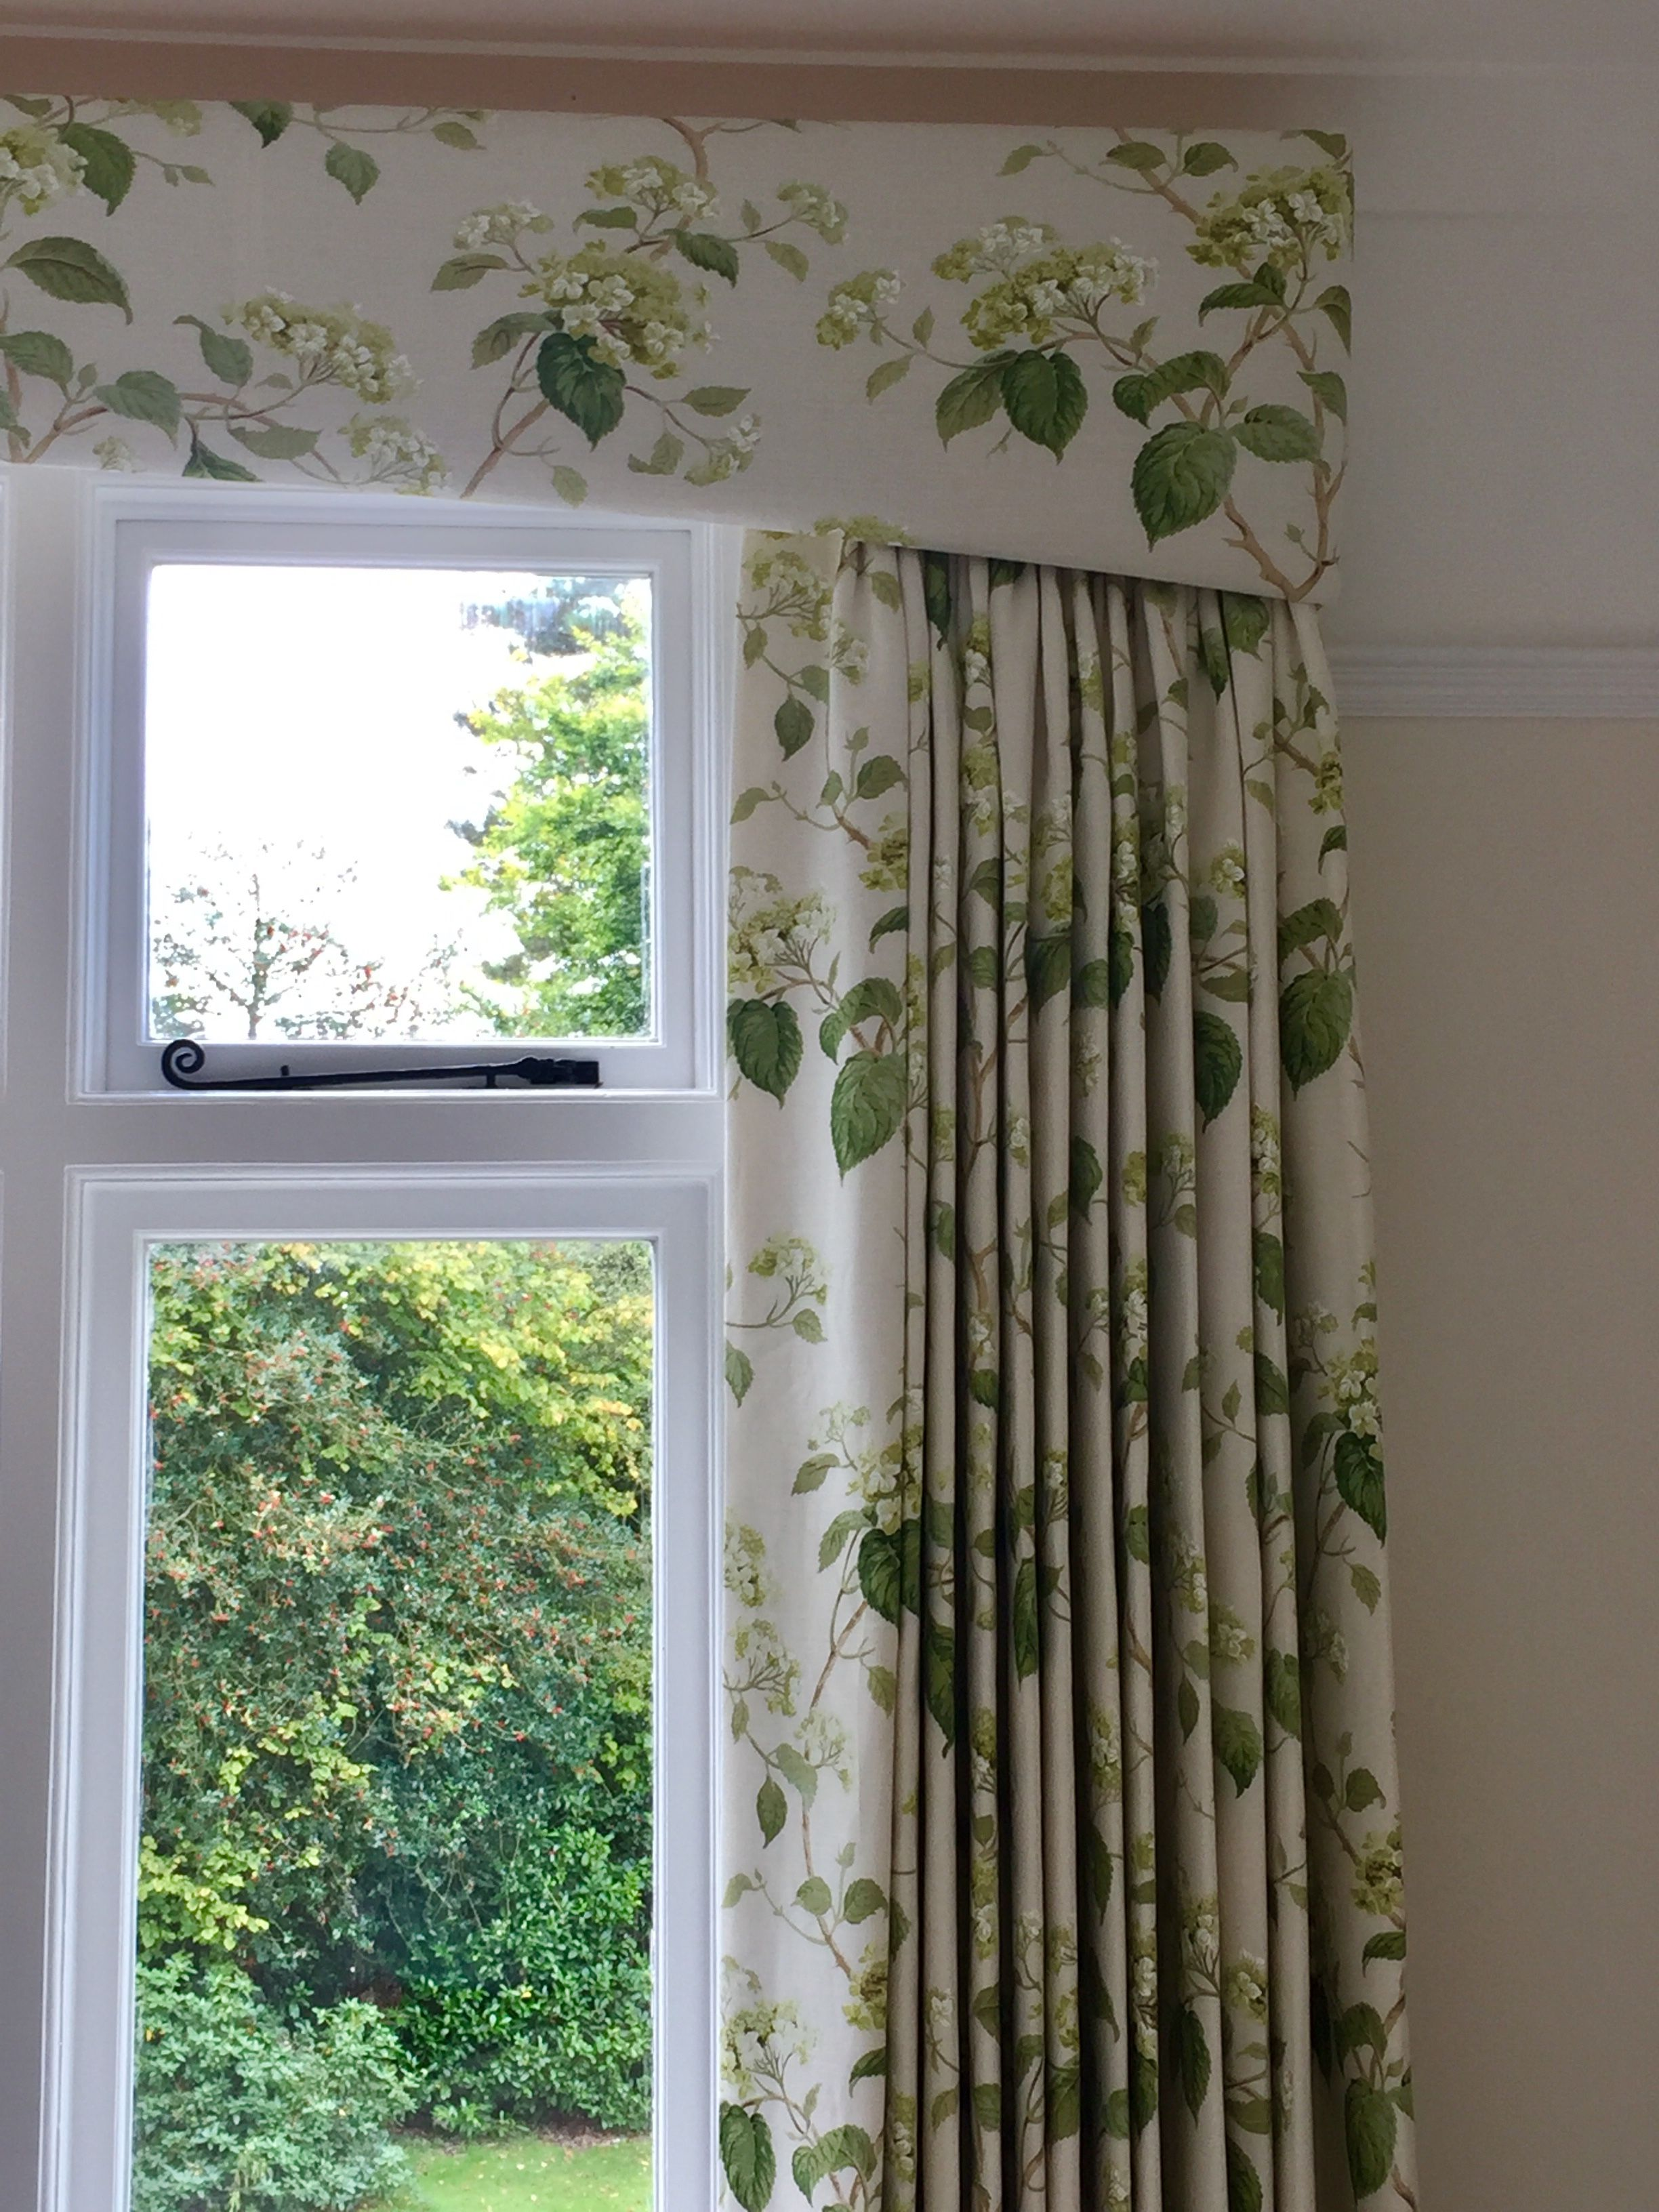 Colefax And Fowler Curtains And Gently Shaped Pelmet In A Smart